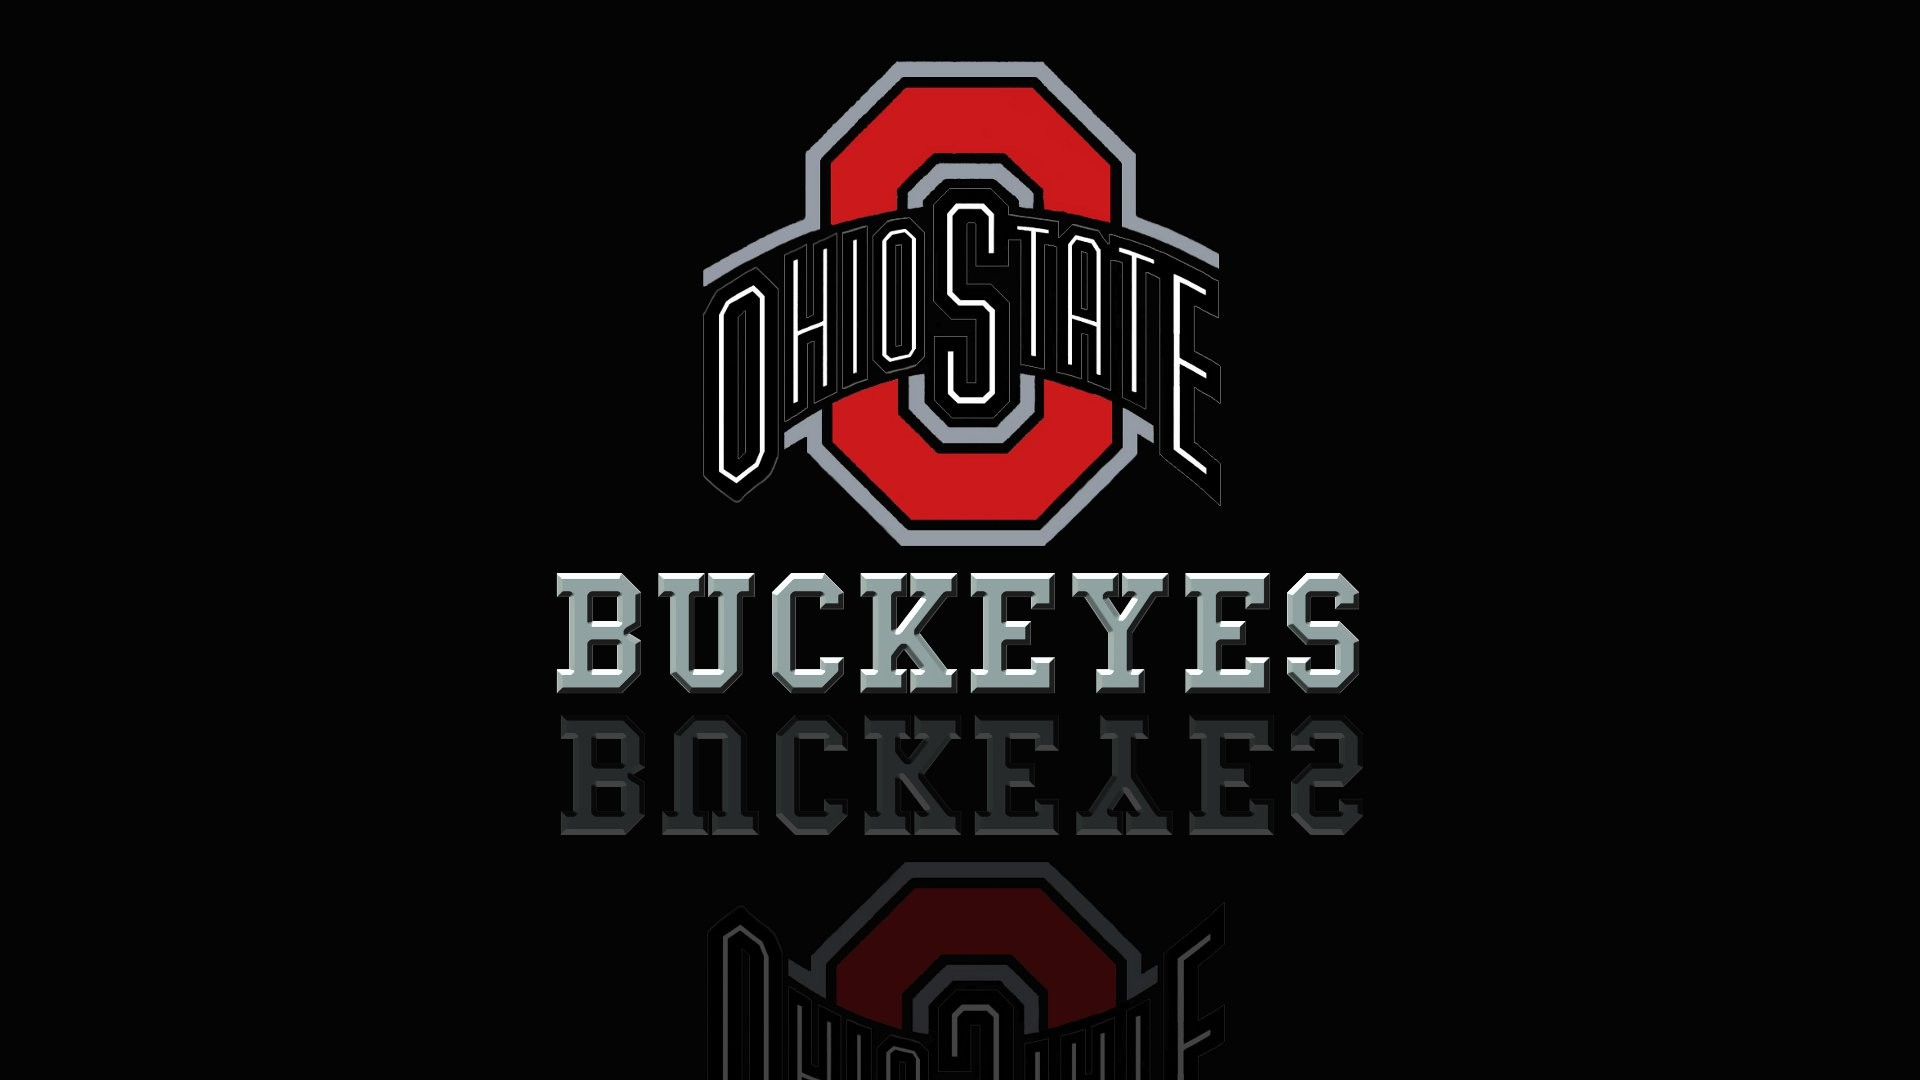 Ohio State Logo Wallpaper: Michigan Wolverines Screensaver And Wallpaper (72+ Images